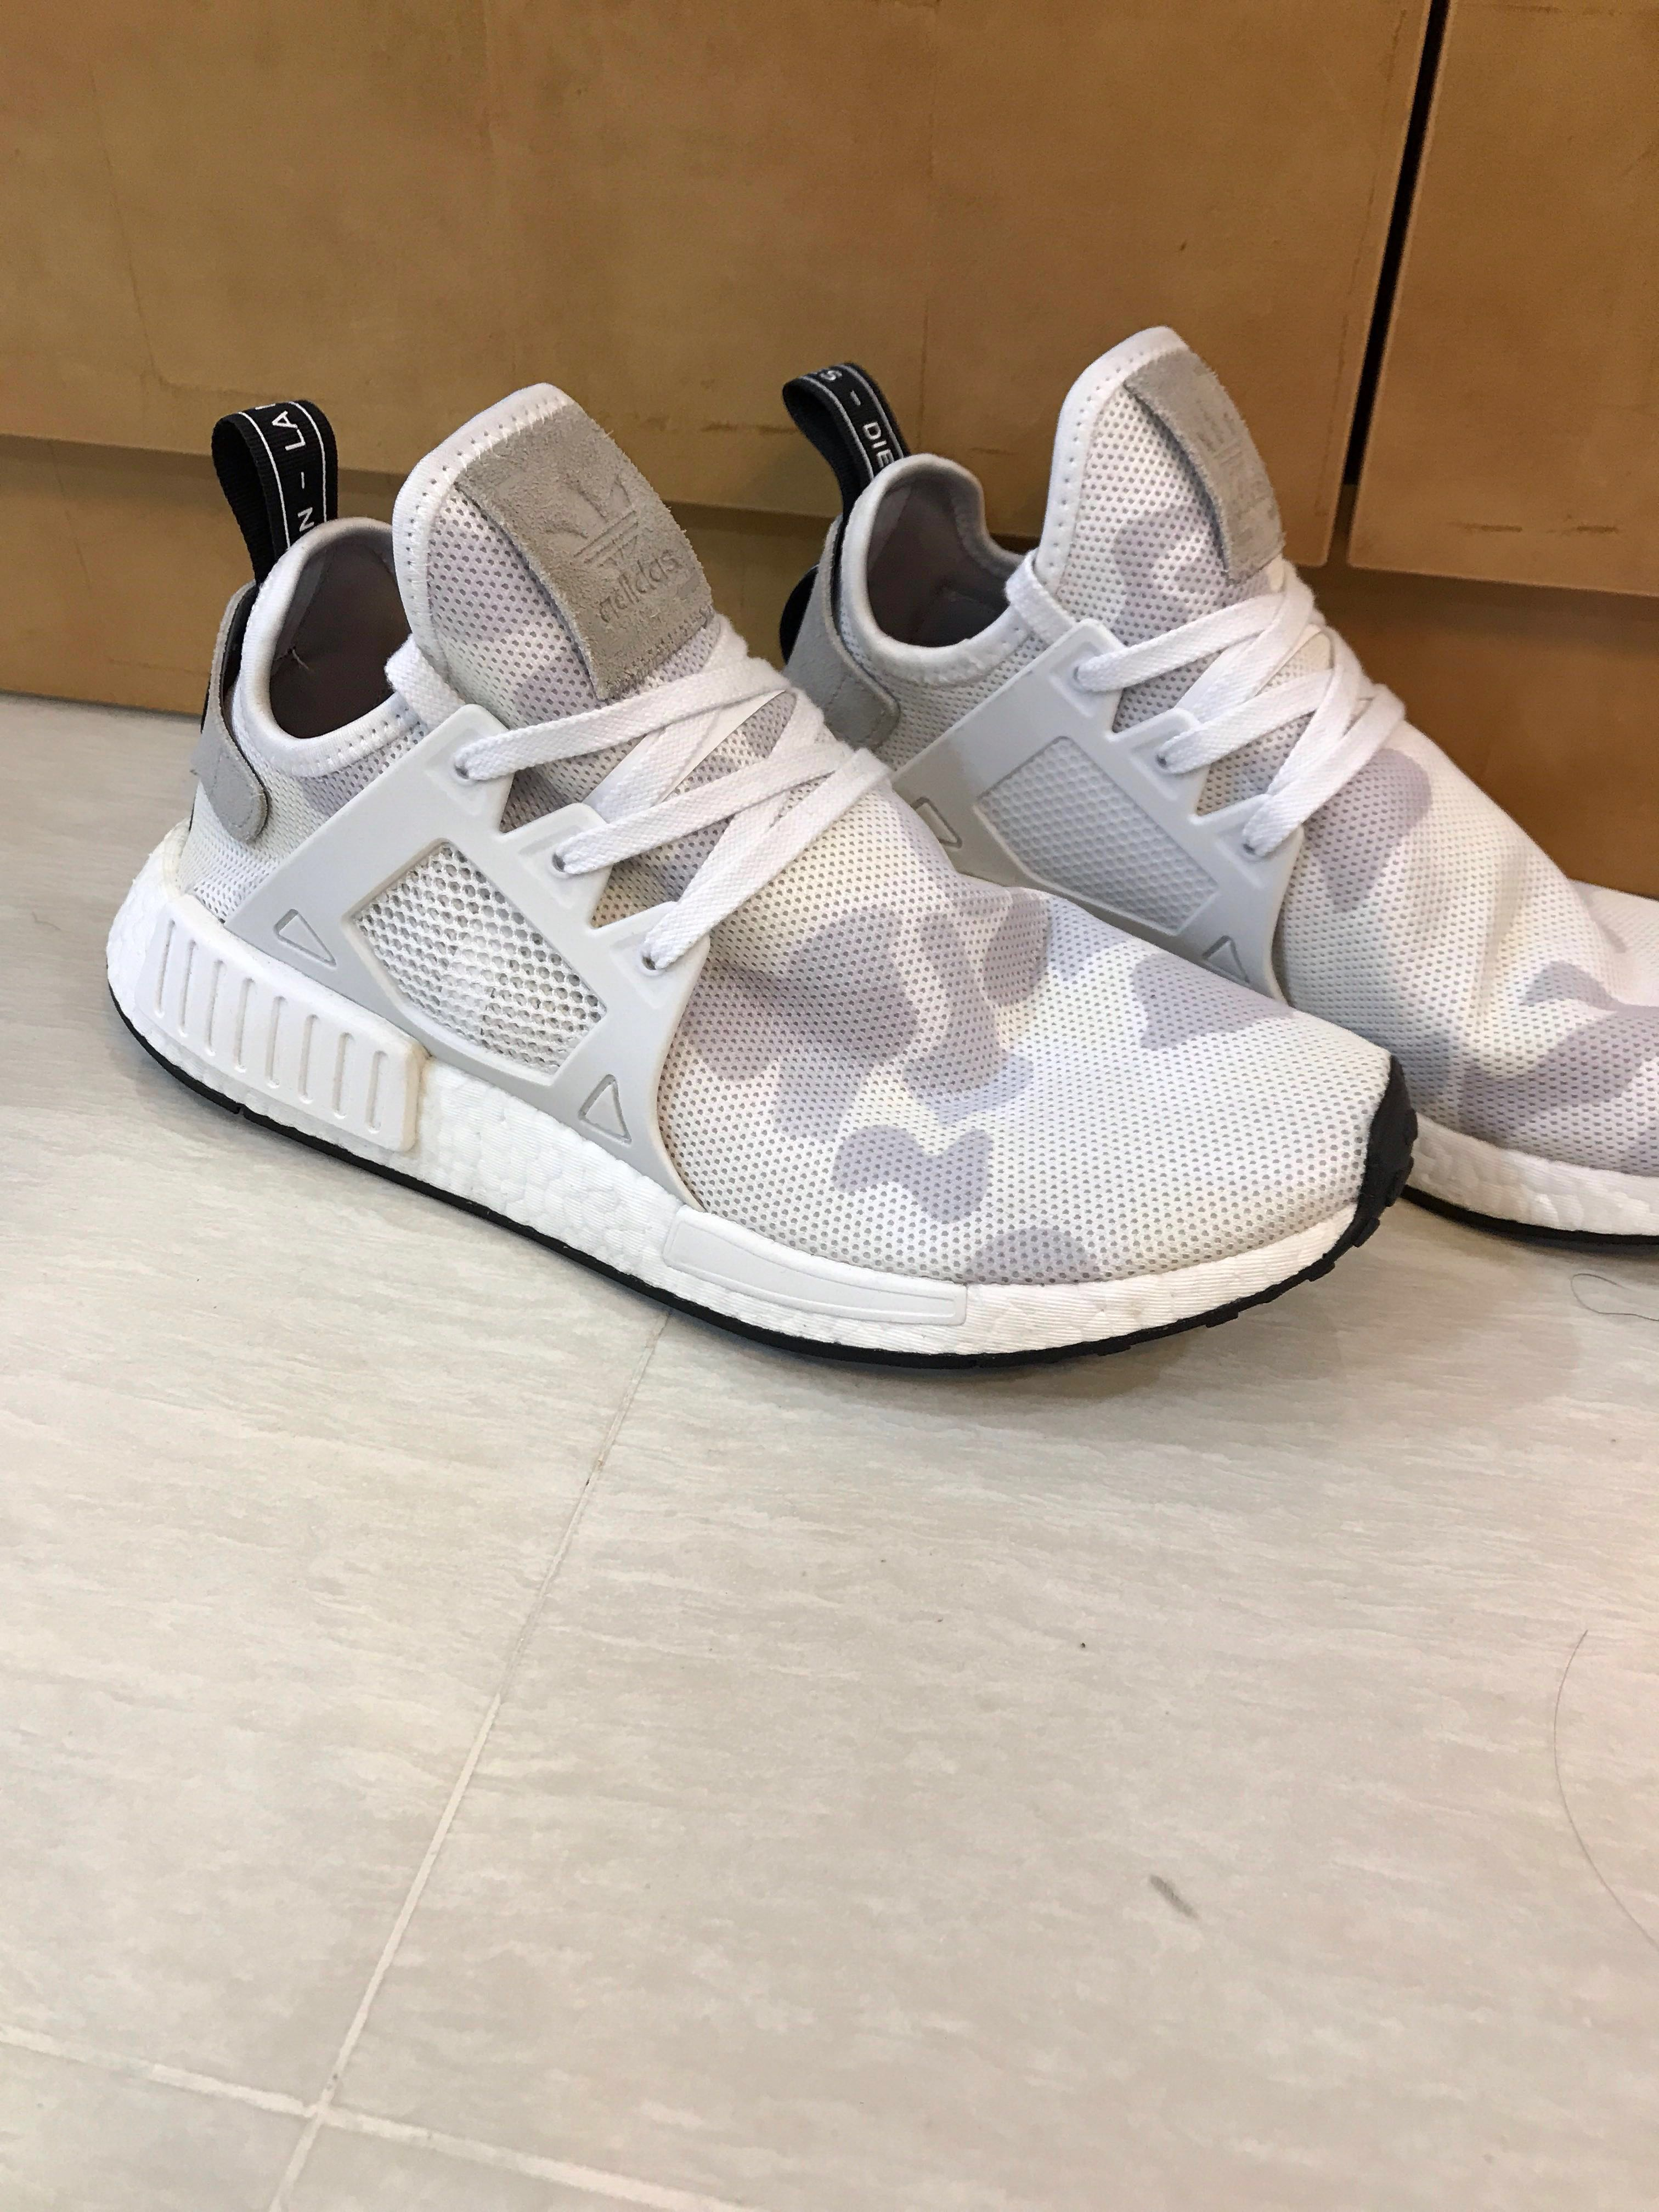 competitive price d5c08 52bbf Nmd XR1 Duck Camo, Mens Fashion, Footwear, Sneakers on Carou